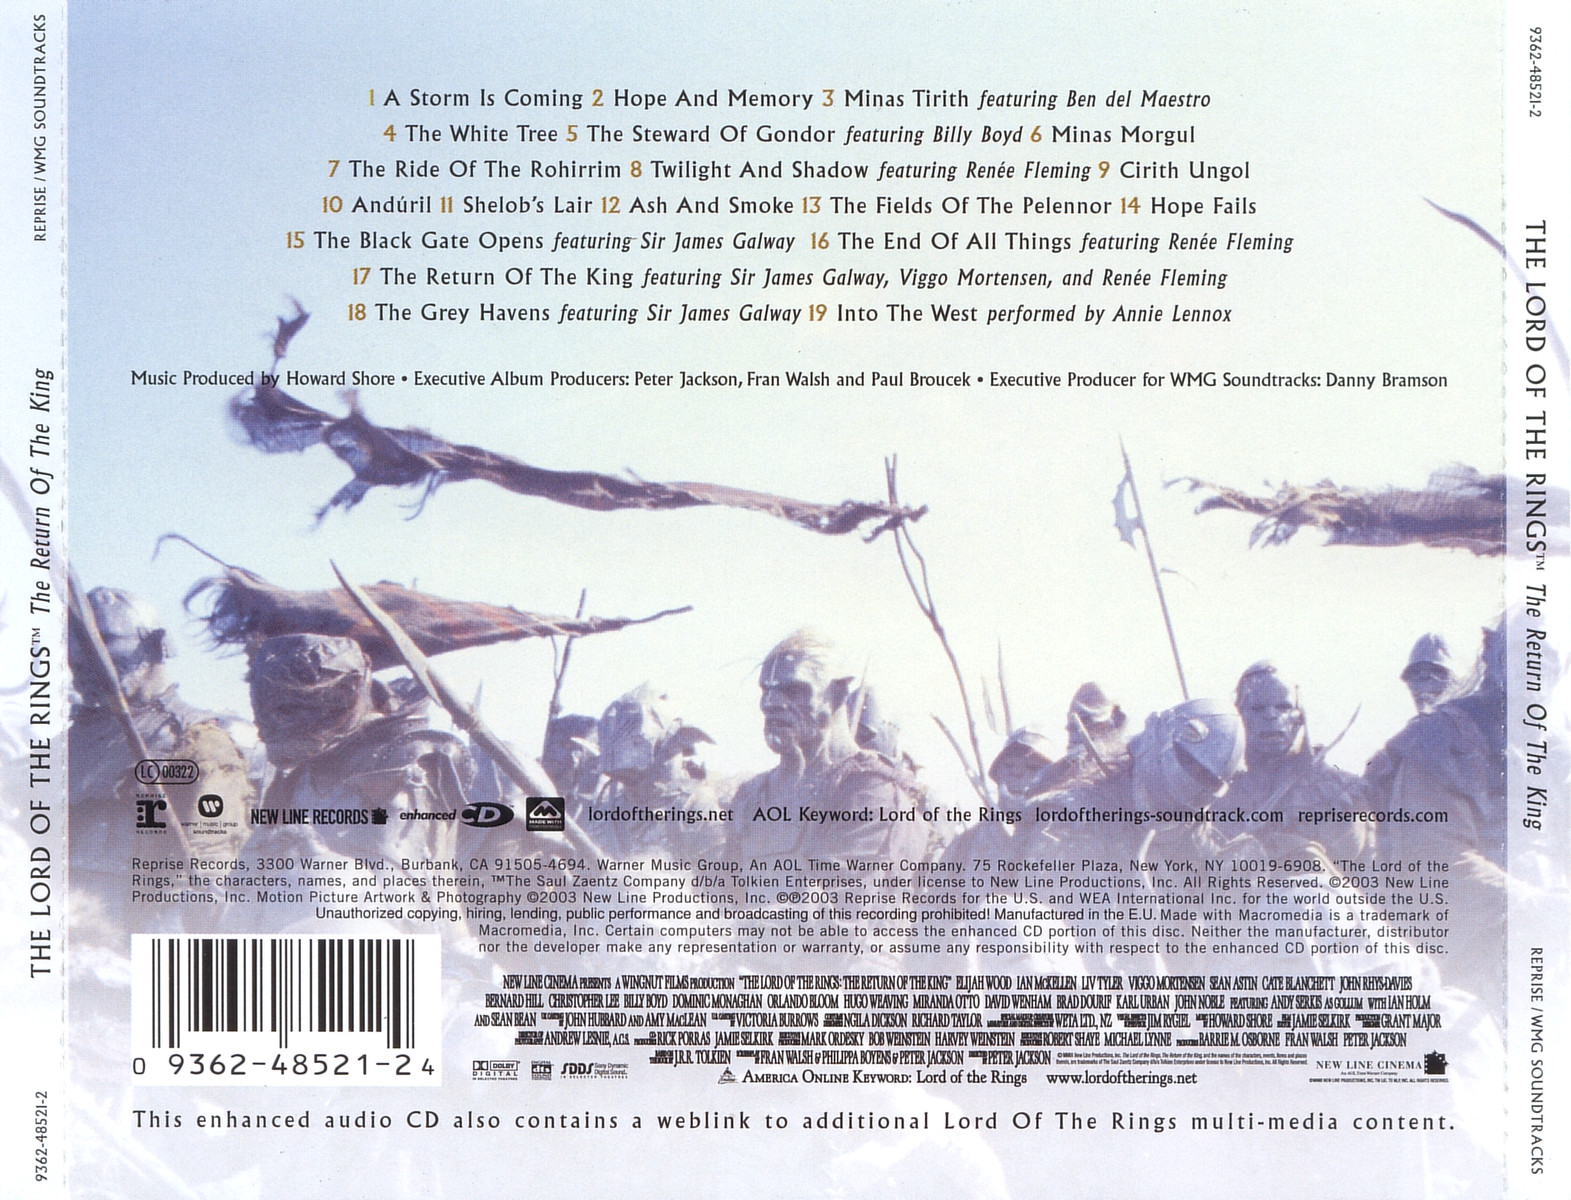 (2003) Howard Shore The Lord of the Rings The Return of the King